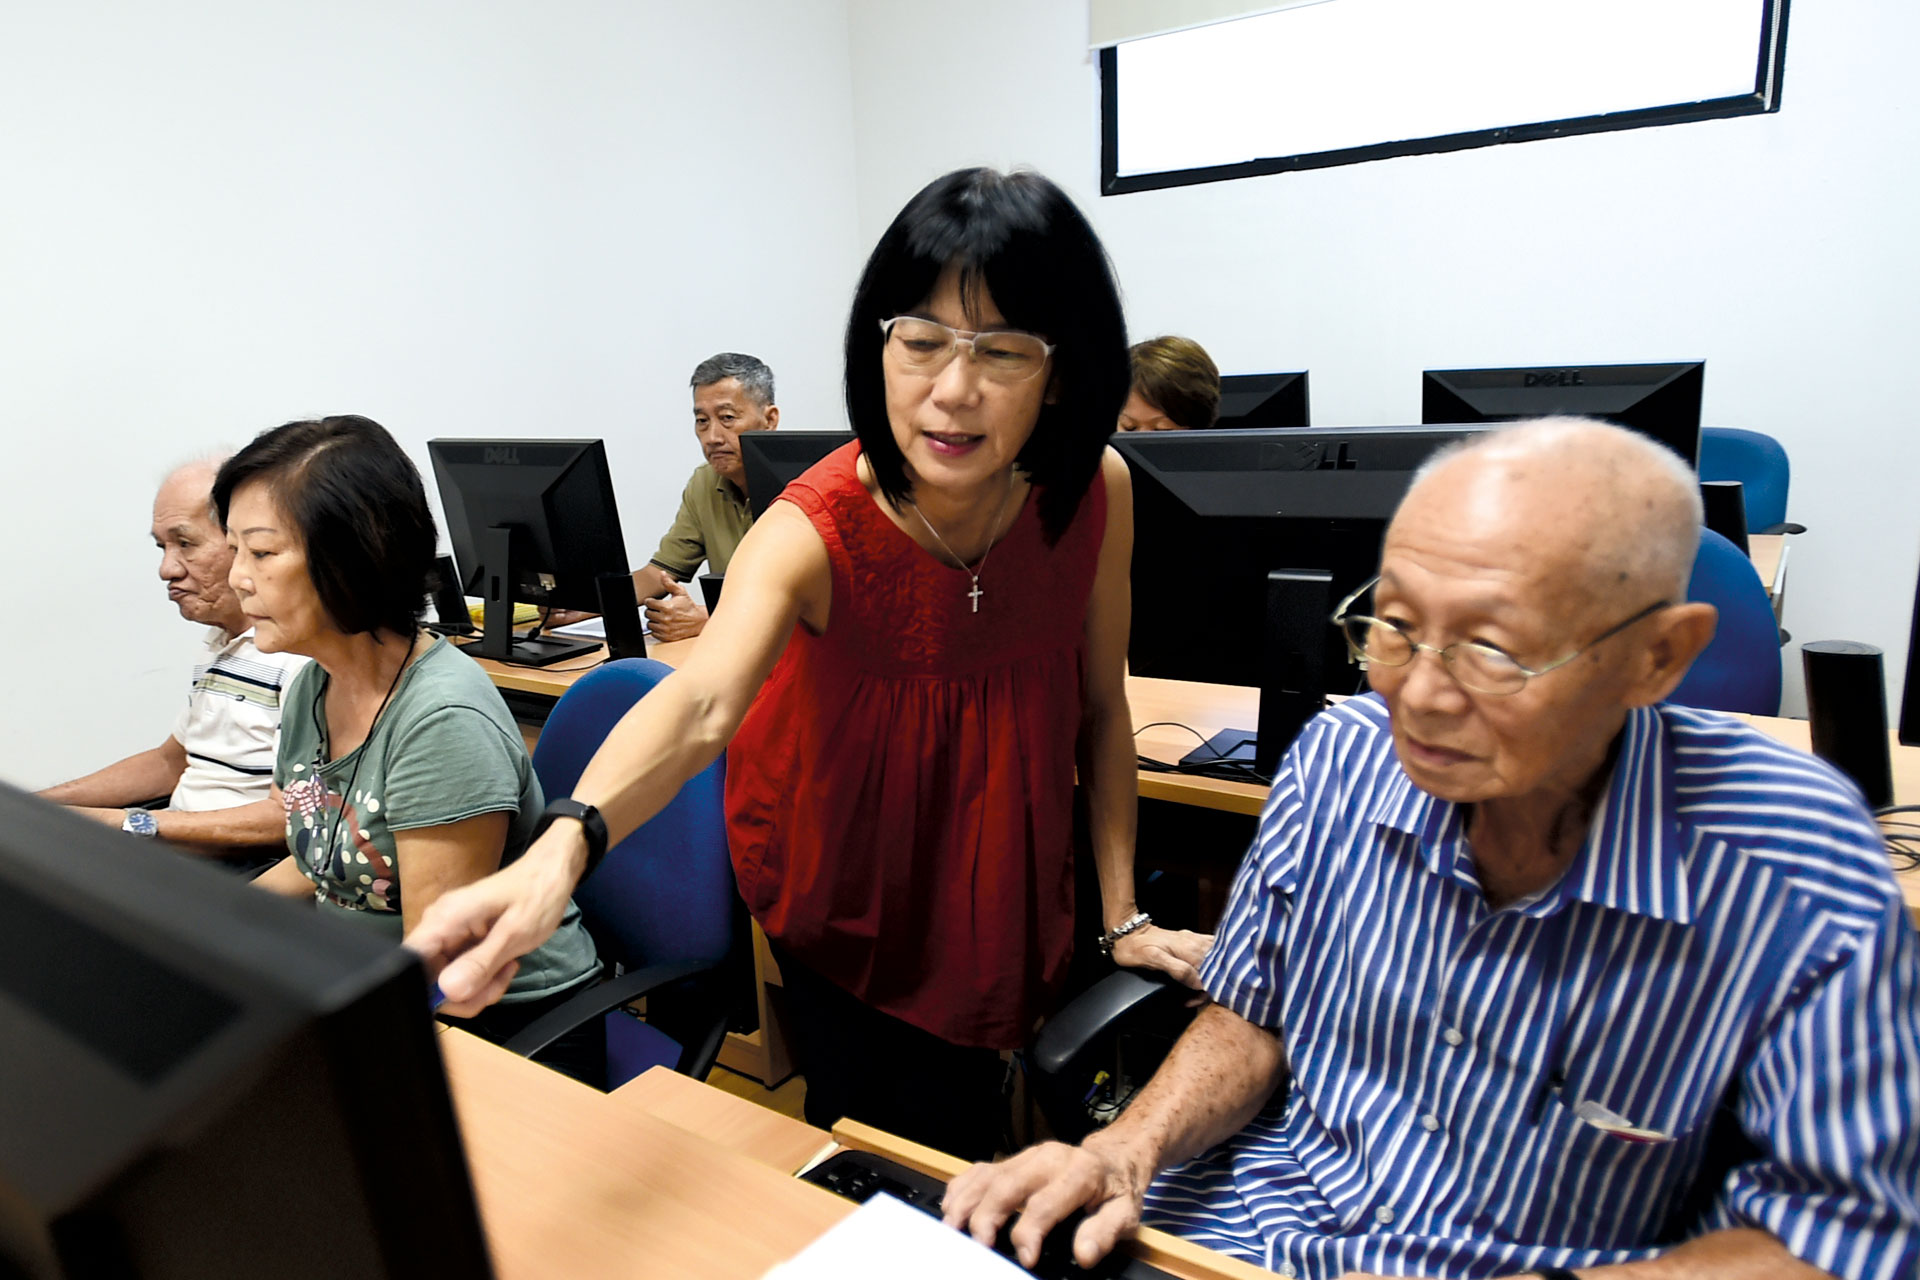 Mdm Ng guides the elderly in using computers.